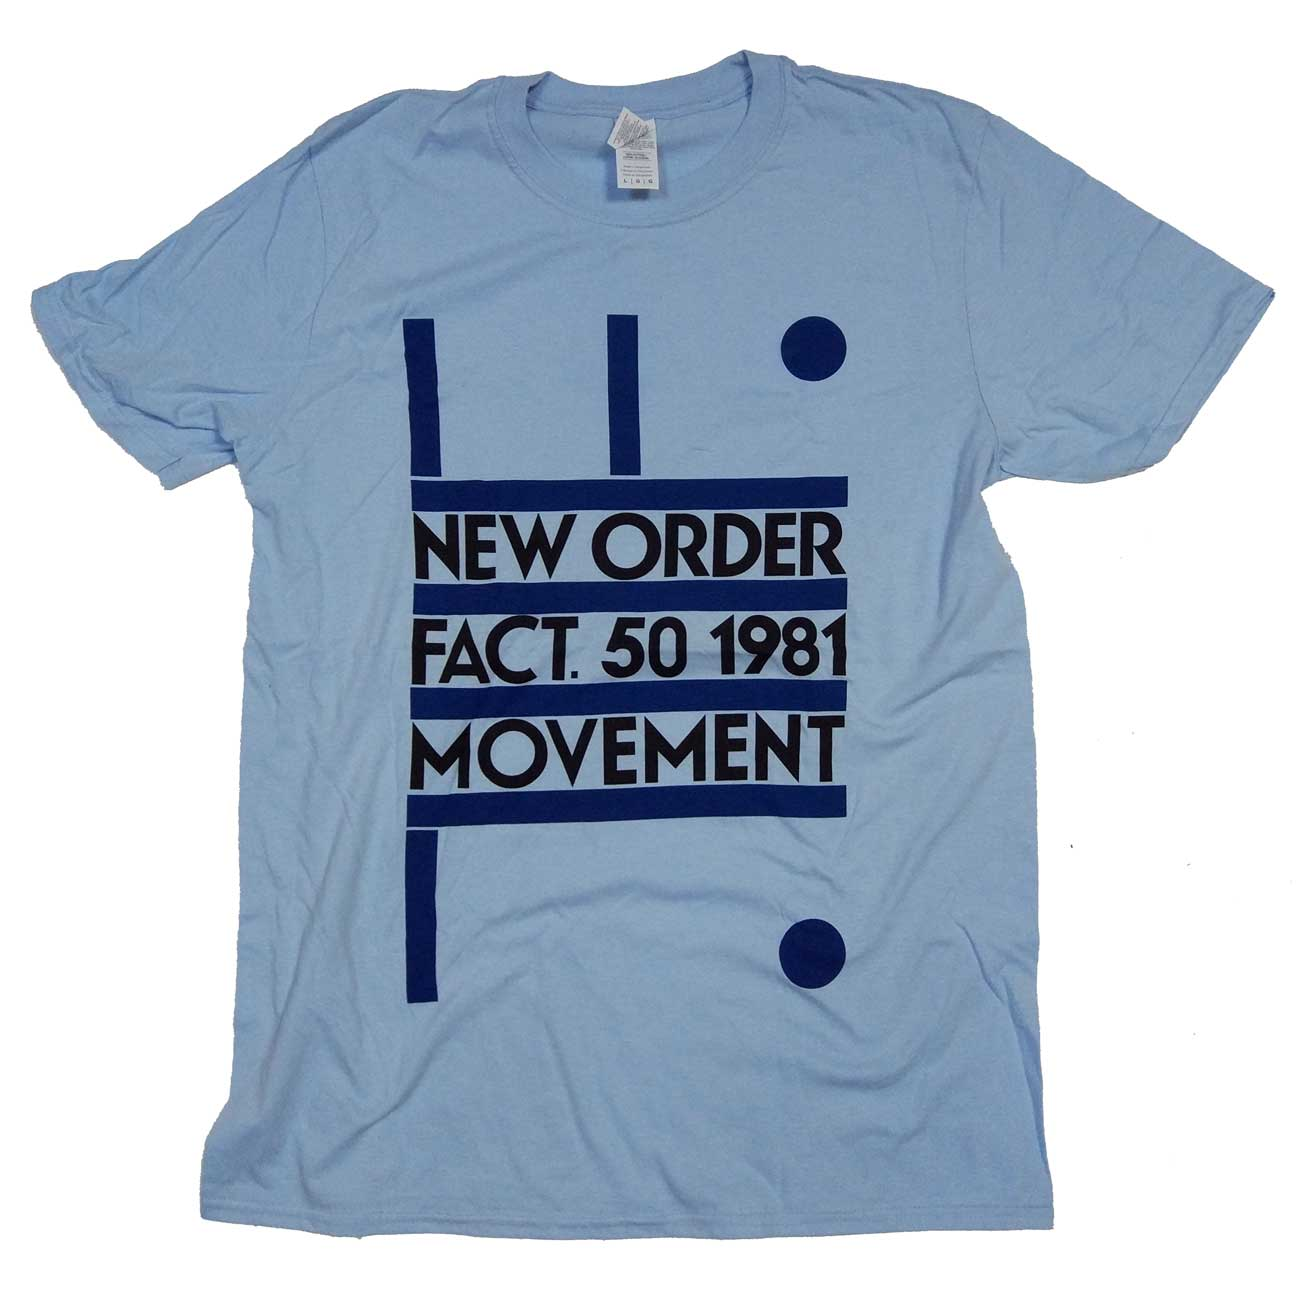 037b2176a50 New Order T Shirt - Movement 100% Official Factory Records